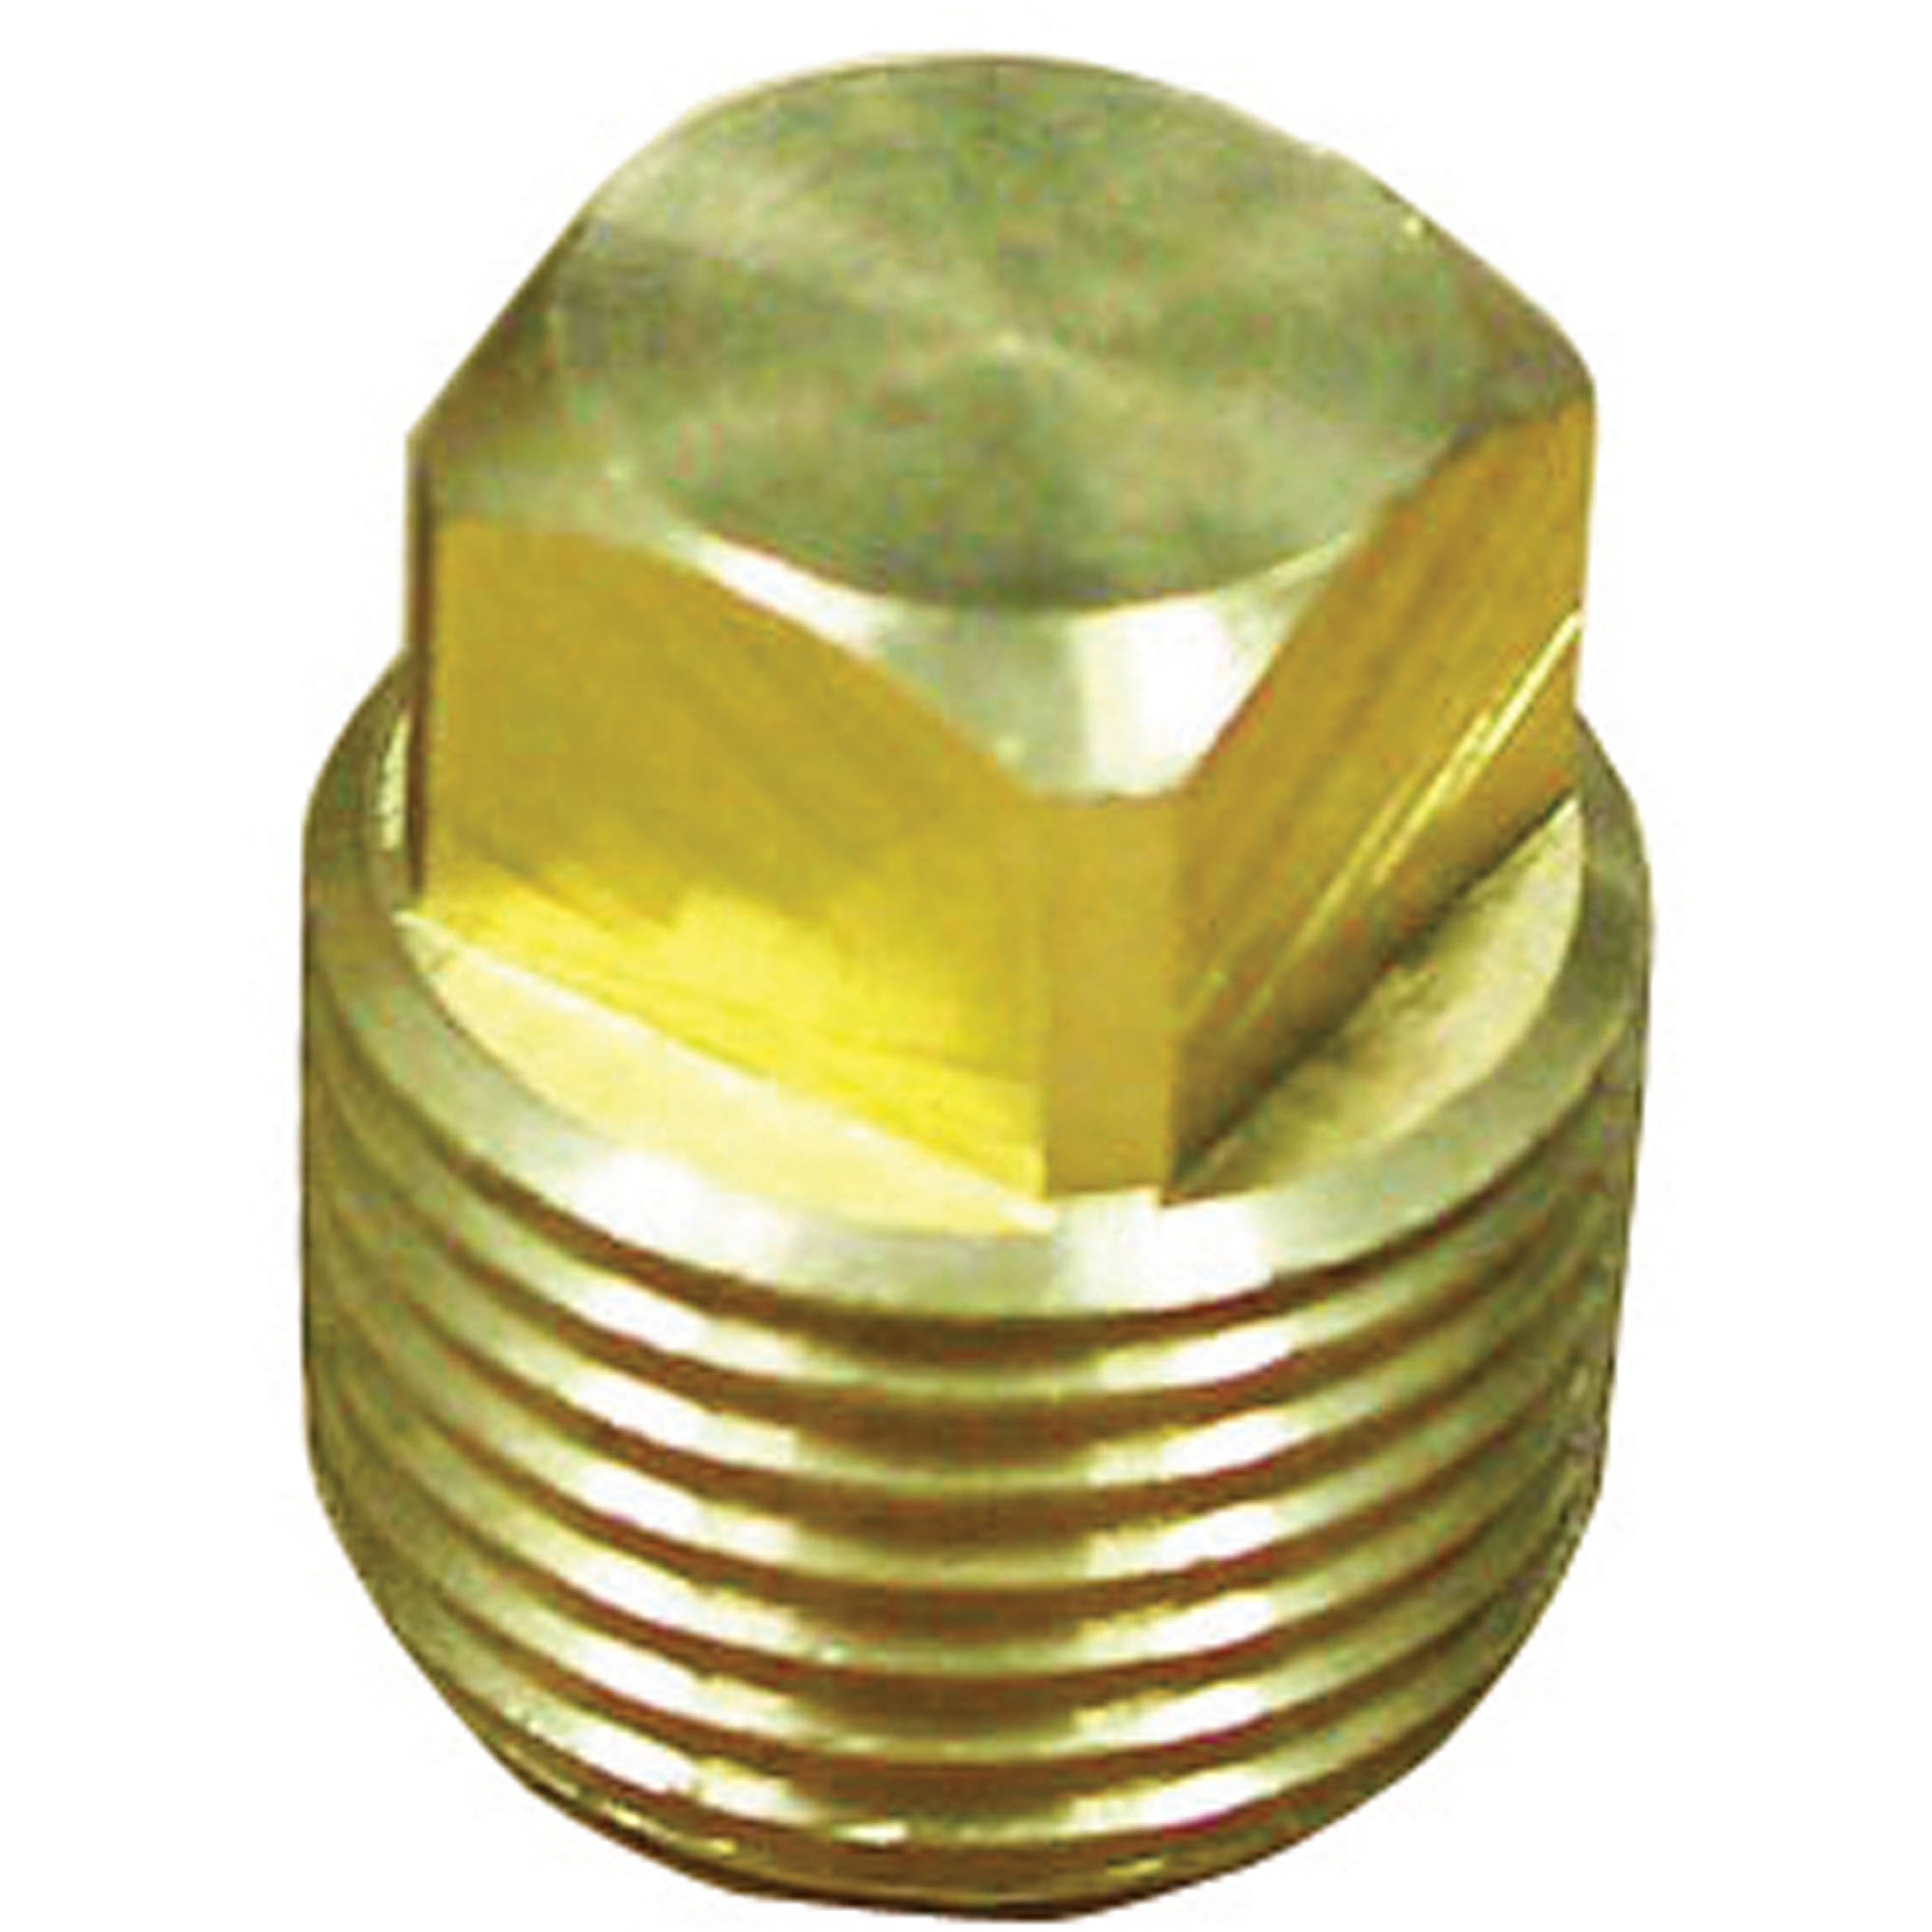 Moeller 042907 020307-10 Replacement Brass Plug for 020305-10